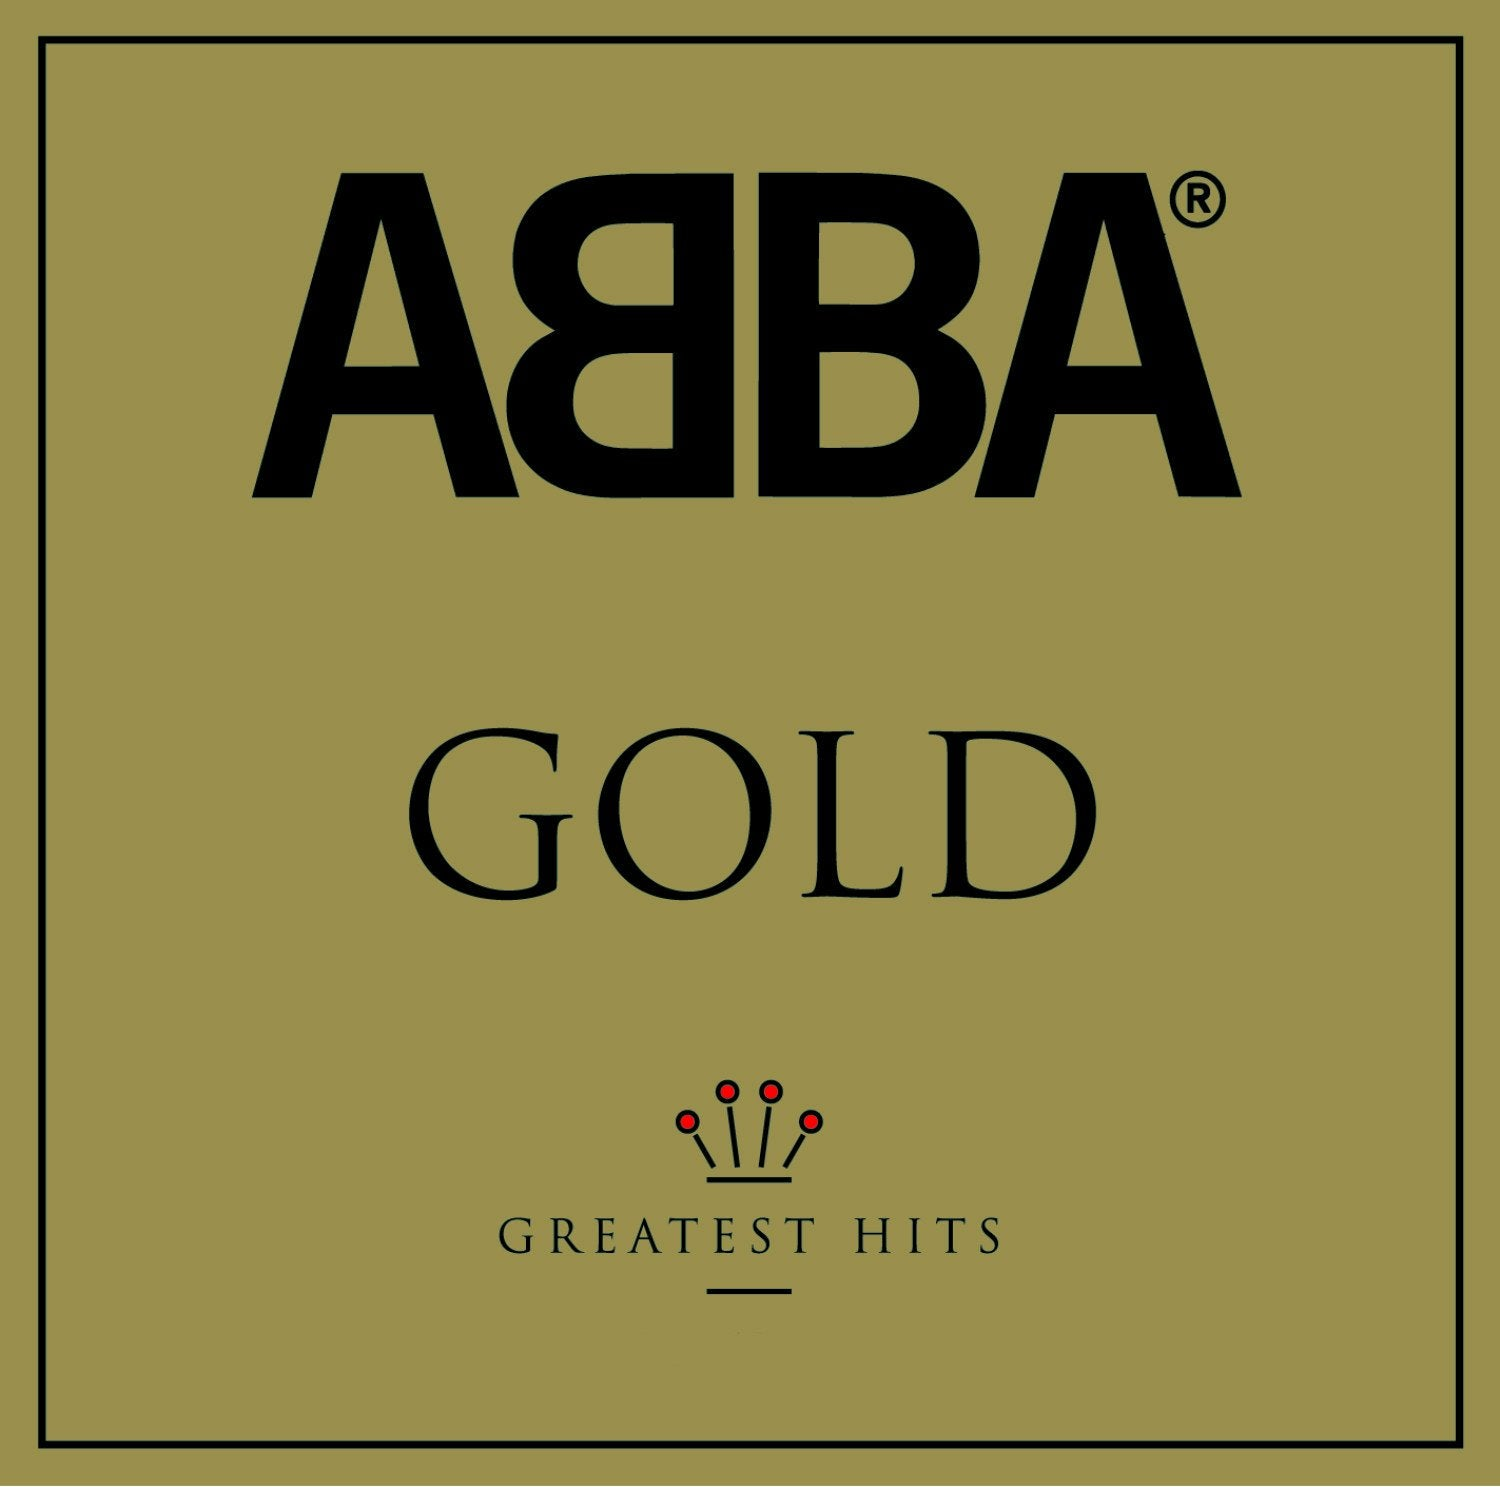 ABBA ‎– Gold (Greatest Hits) - Gears For Ears